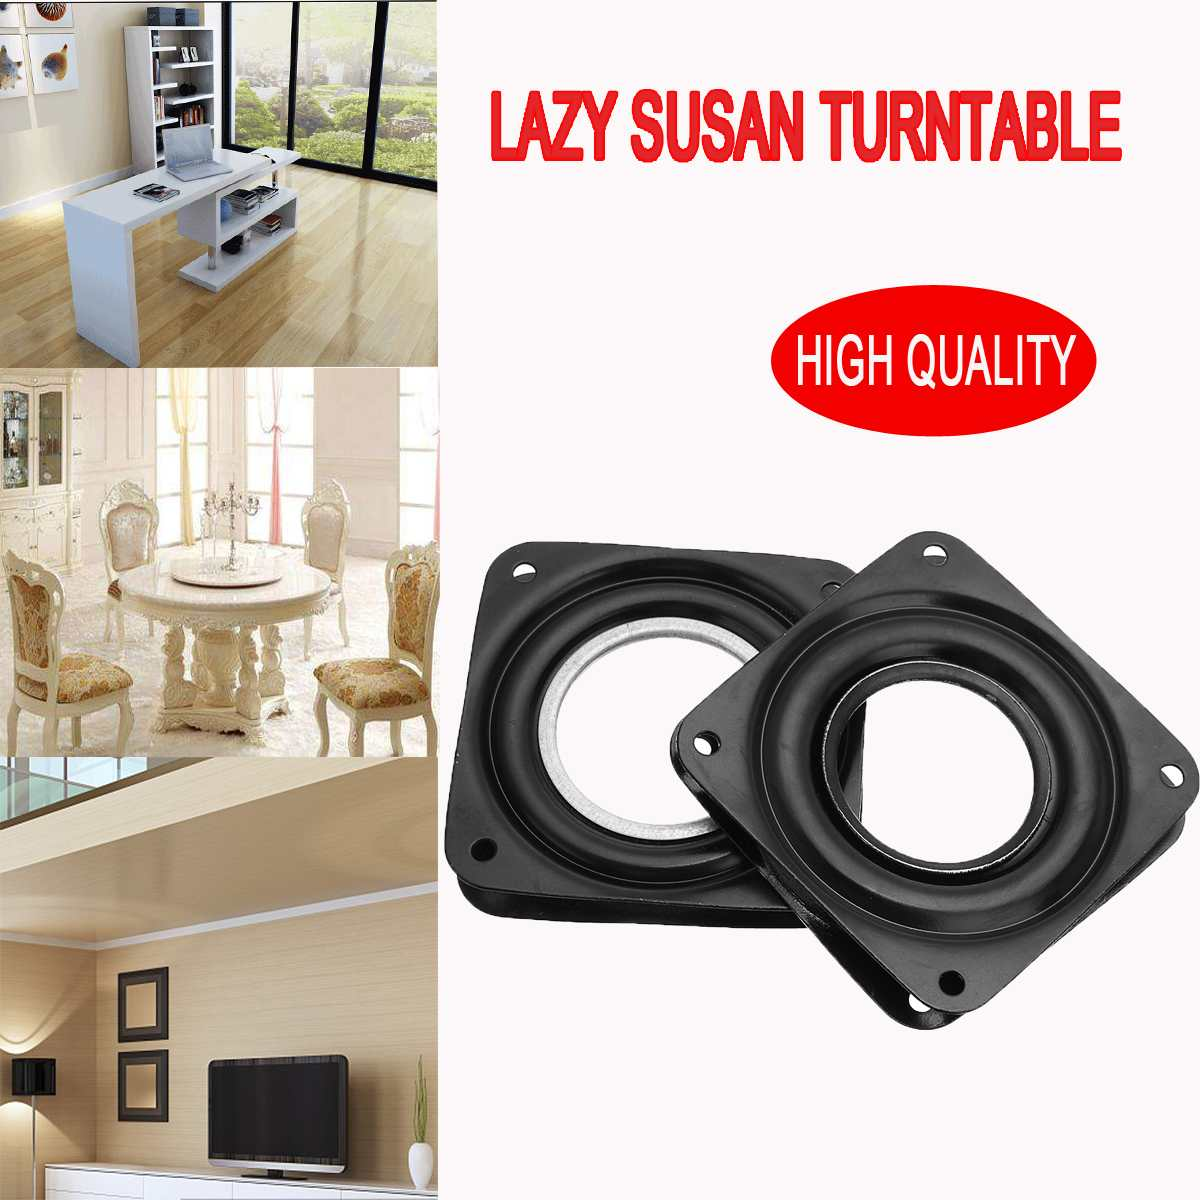 3 Inch Rotating Plate Replacement Metal Lazy Susan Bearing Turntable Tv Rack Desk Seat Bar Tool 72mm X 72mm X 8.3mm Furniture Parts